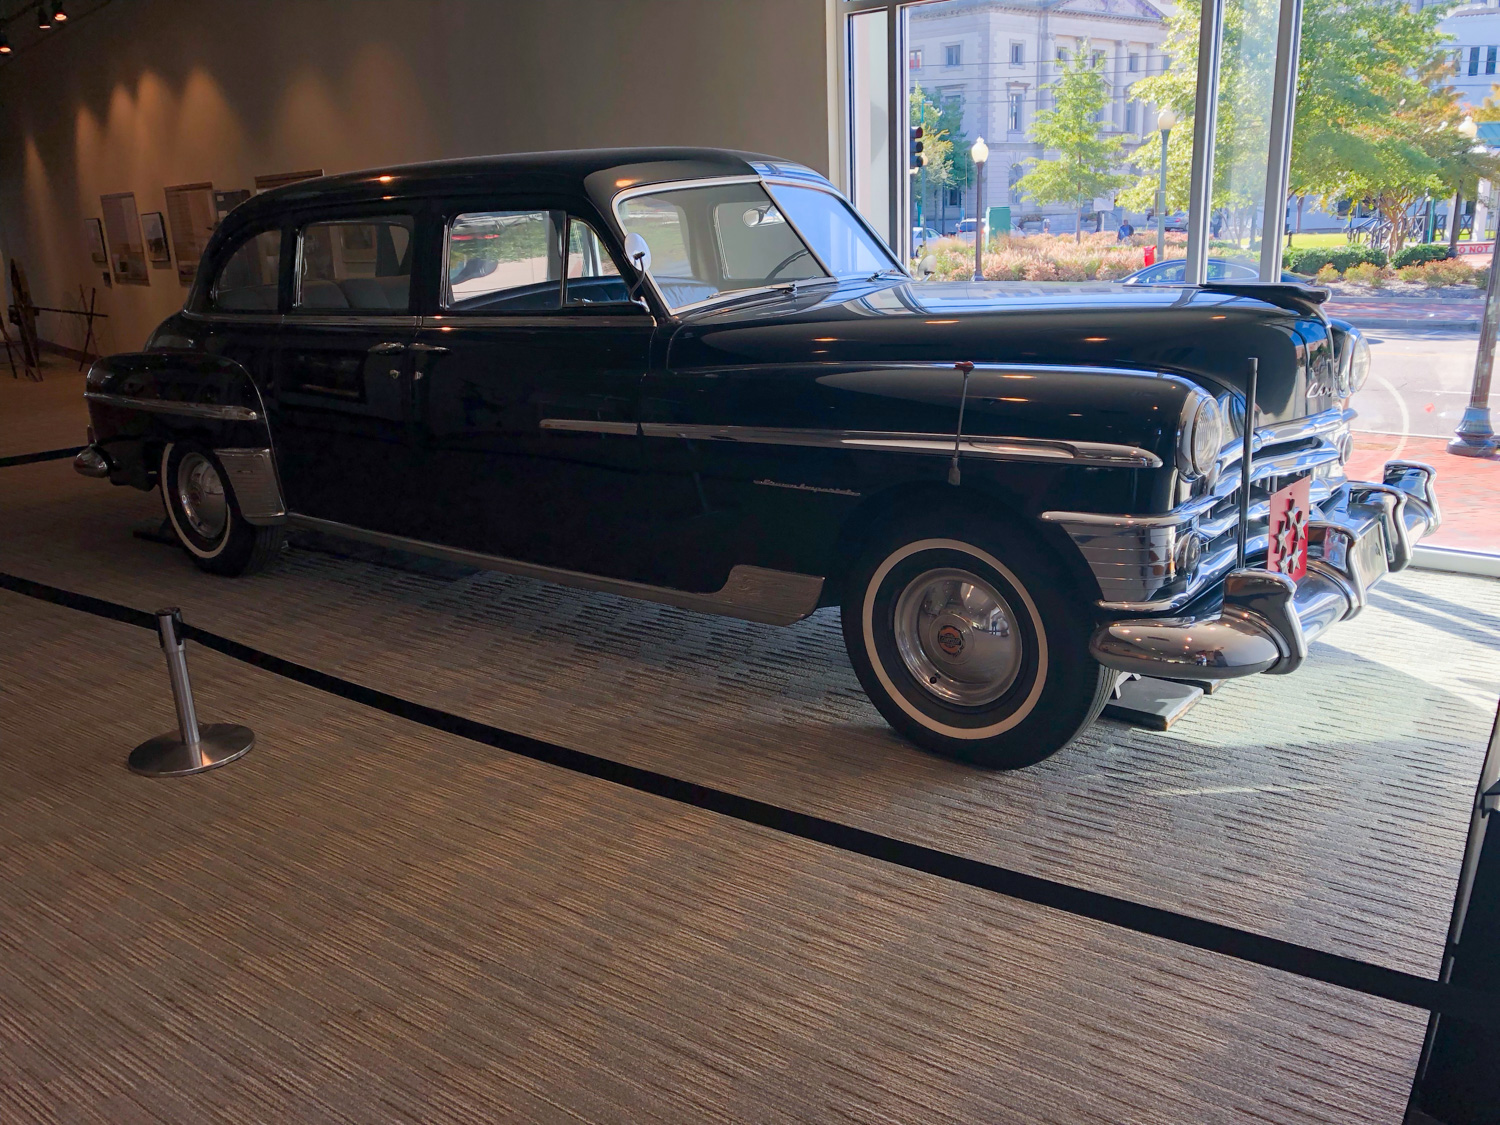 MacArthur's car has no fluids in it, and has not been driven since its donation in 1963.